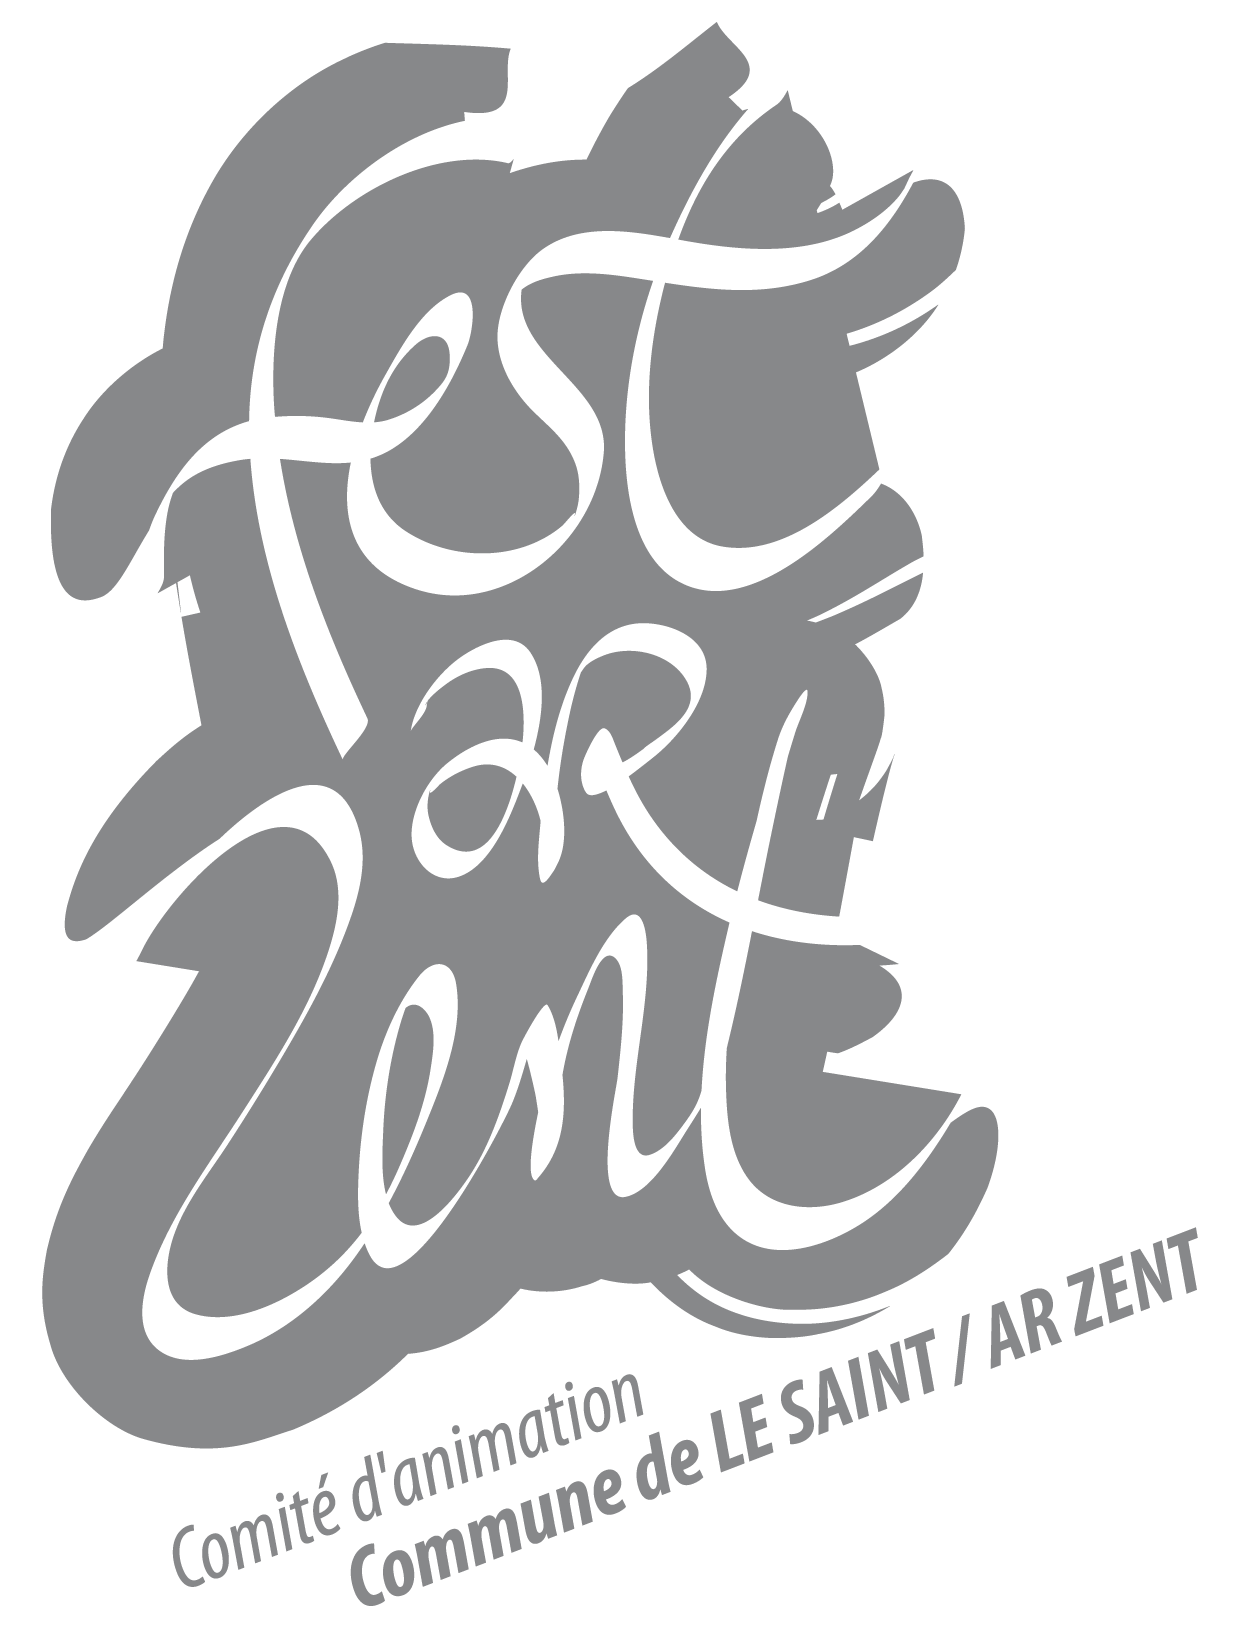 Logo association Fest Ar Zent